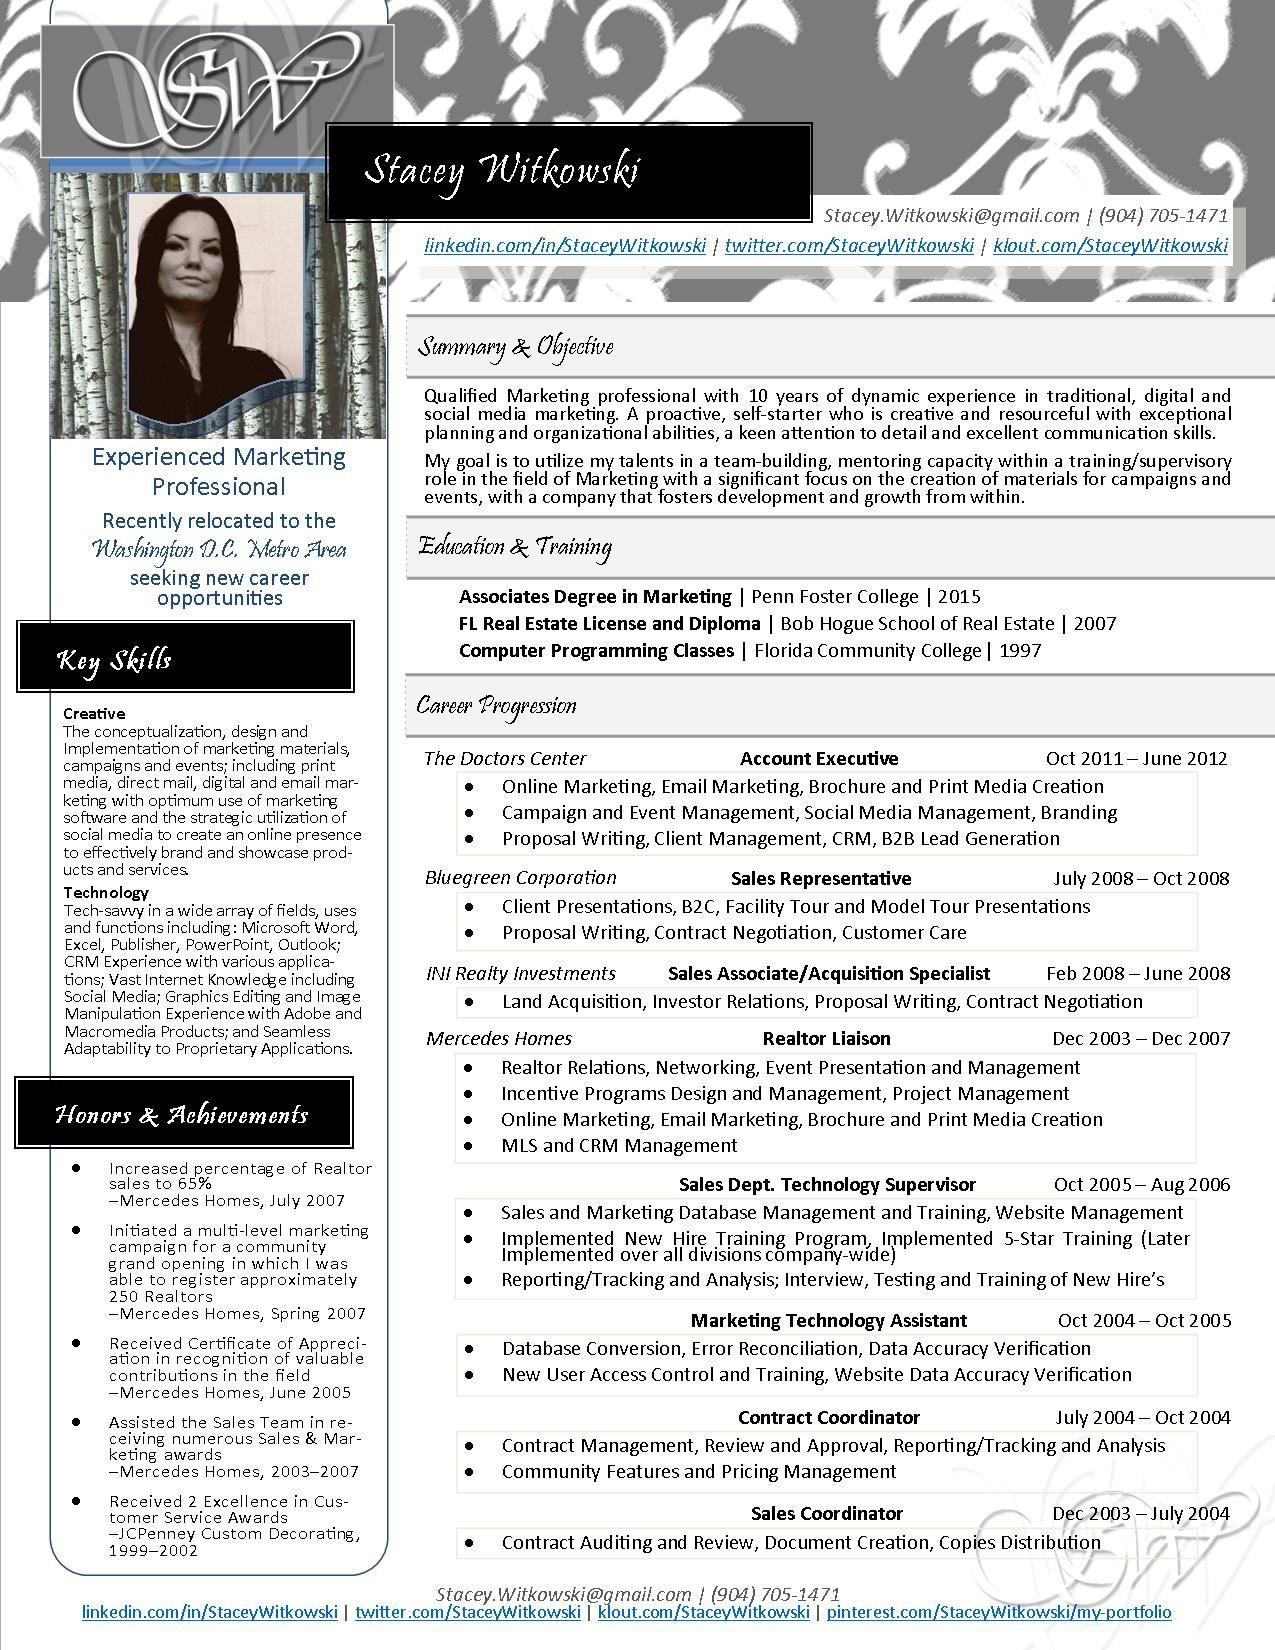 New One Page Resume Design Stacey Witkowski 2013 Myresume